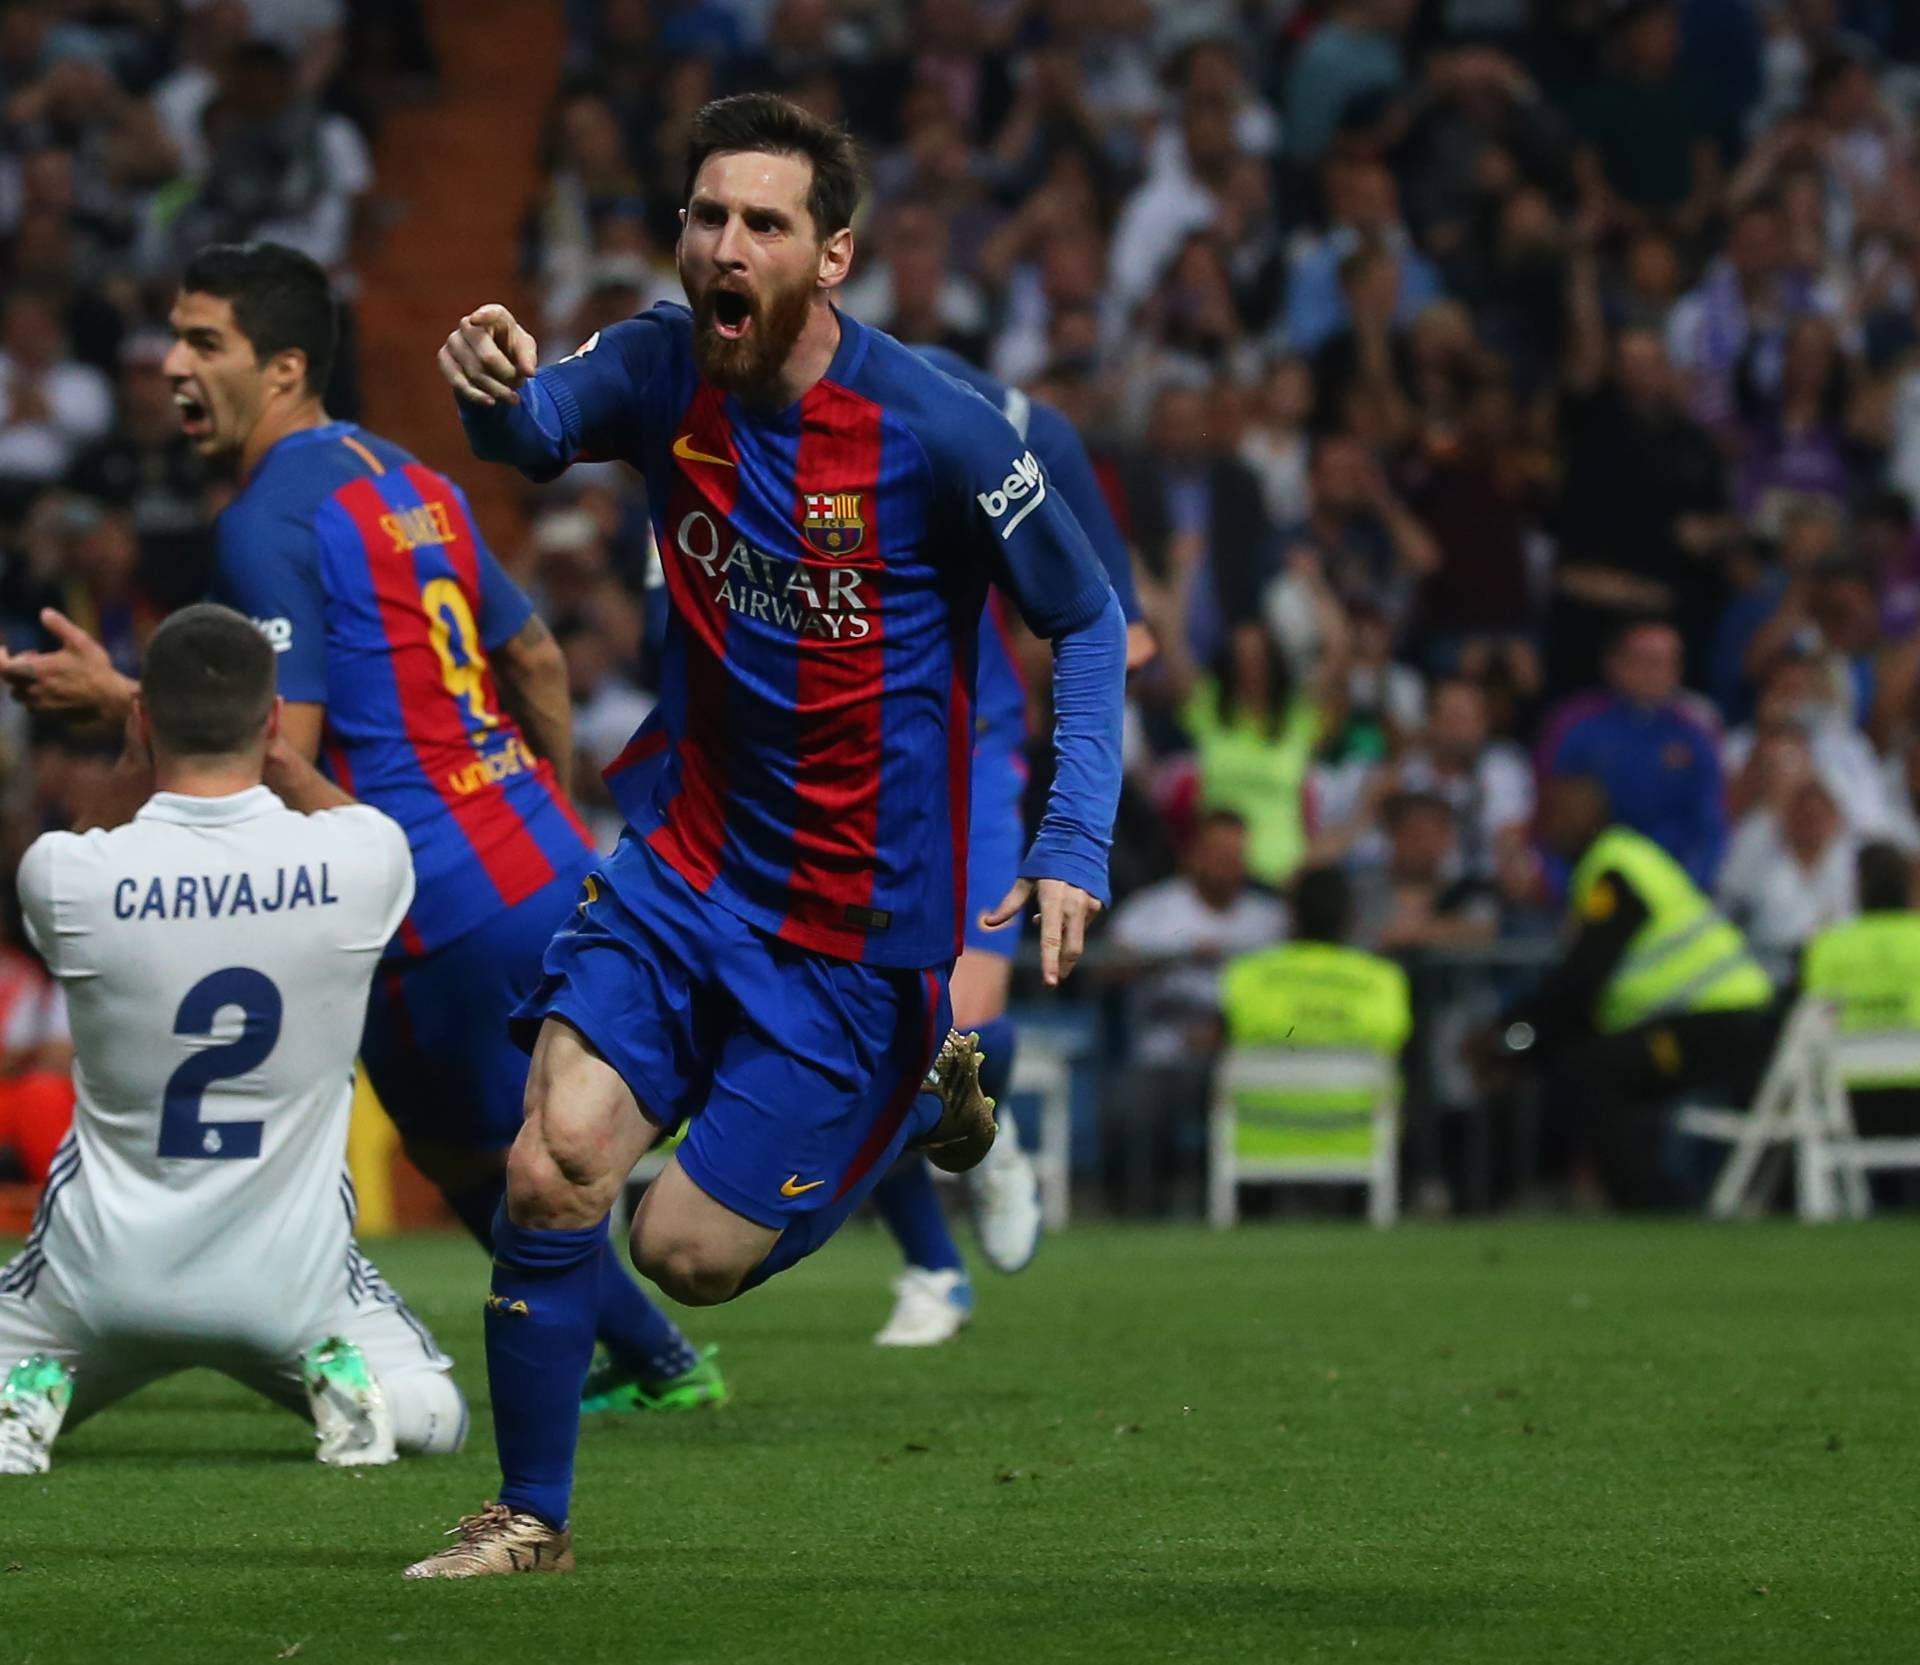 Barcelona's Lionel Messi celebrates scoring their third goal